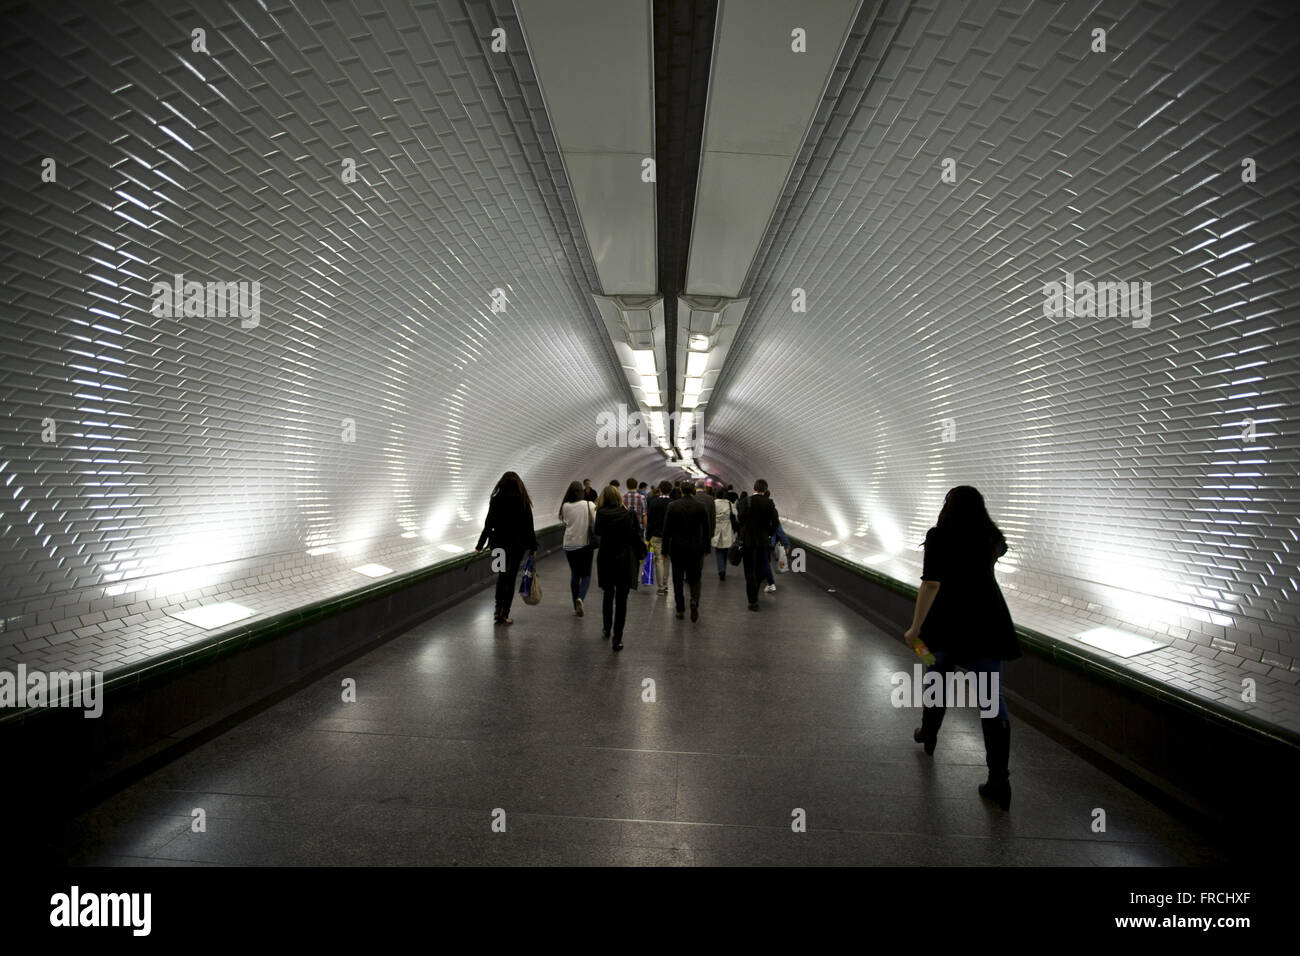 Movement of people in the hall of subway station - Stock Image